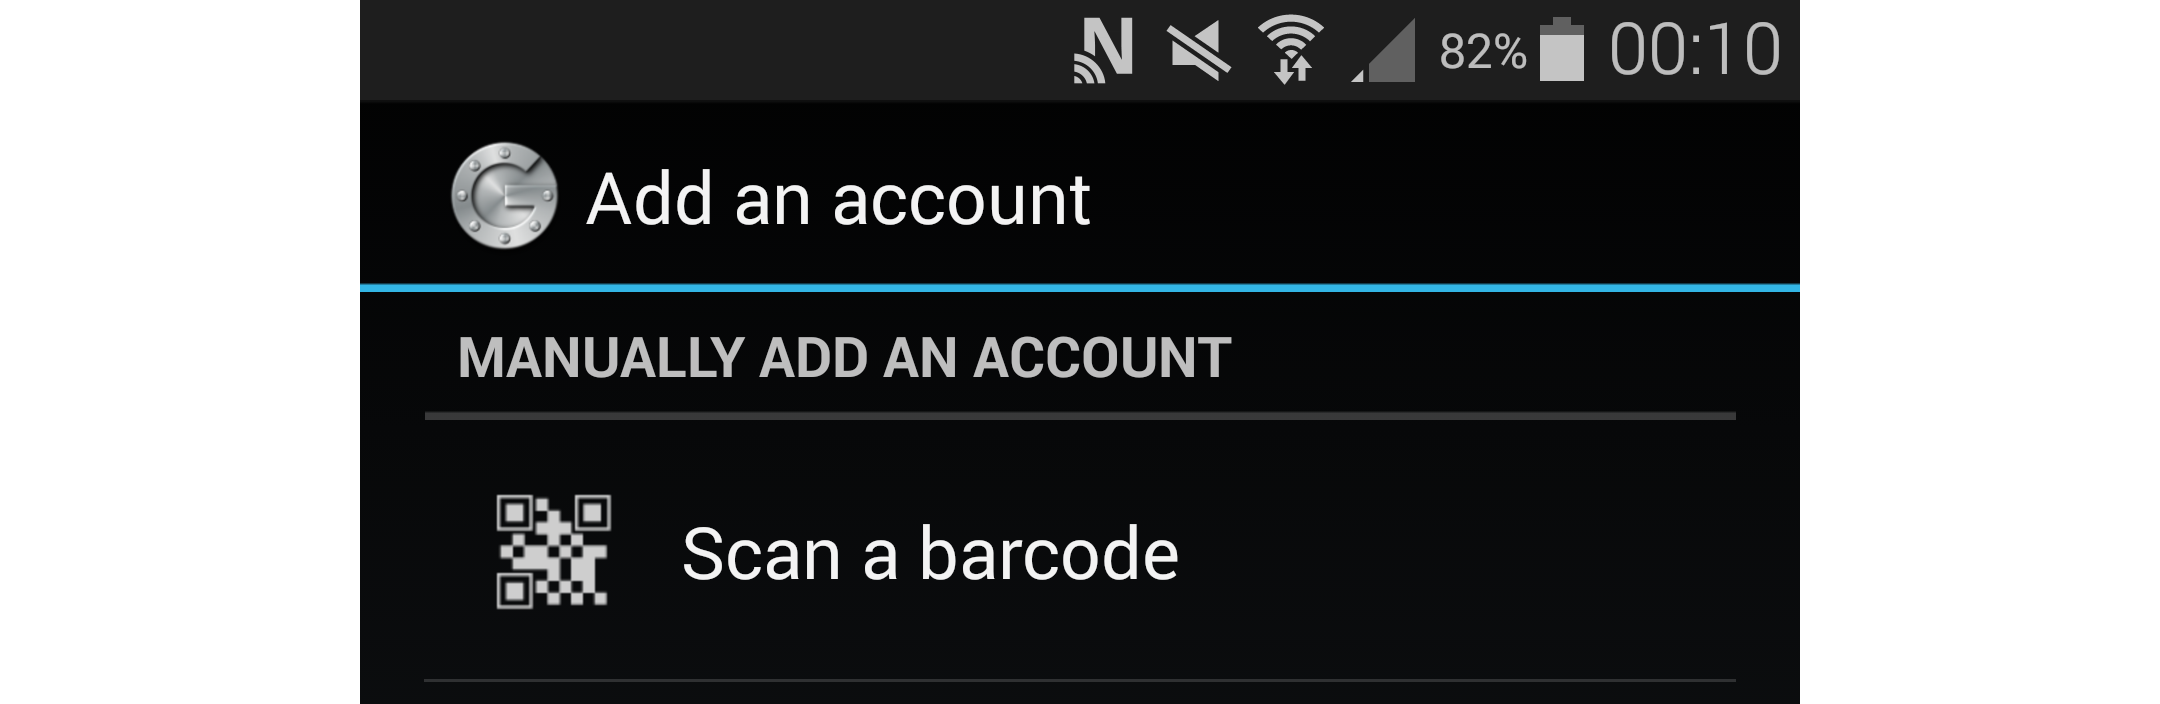 Google Authenticator Scan Barcode Menu